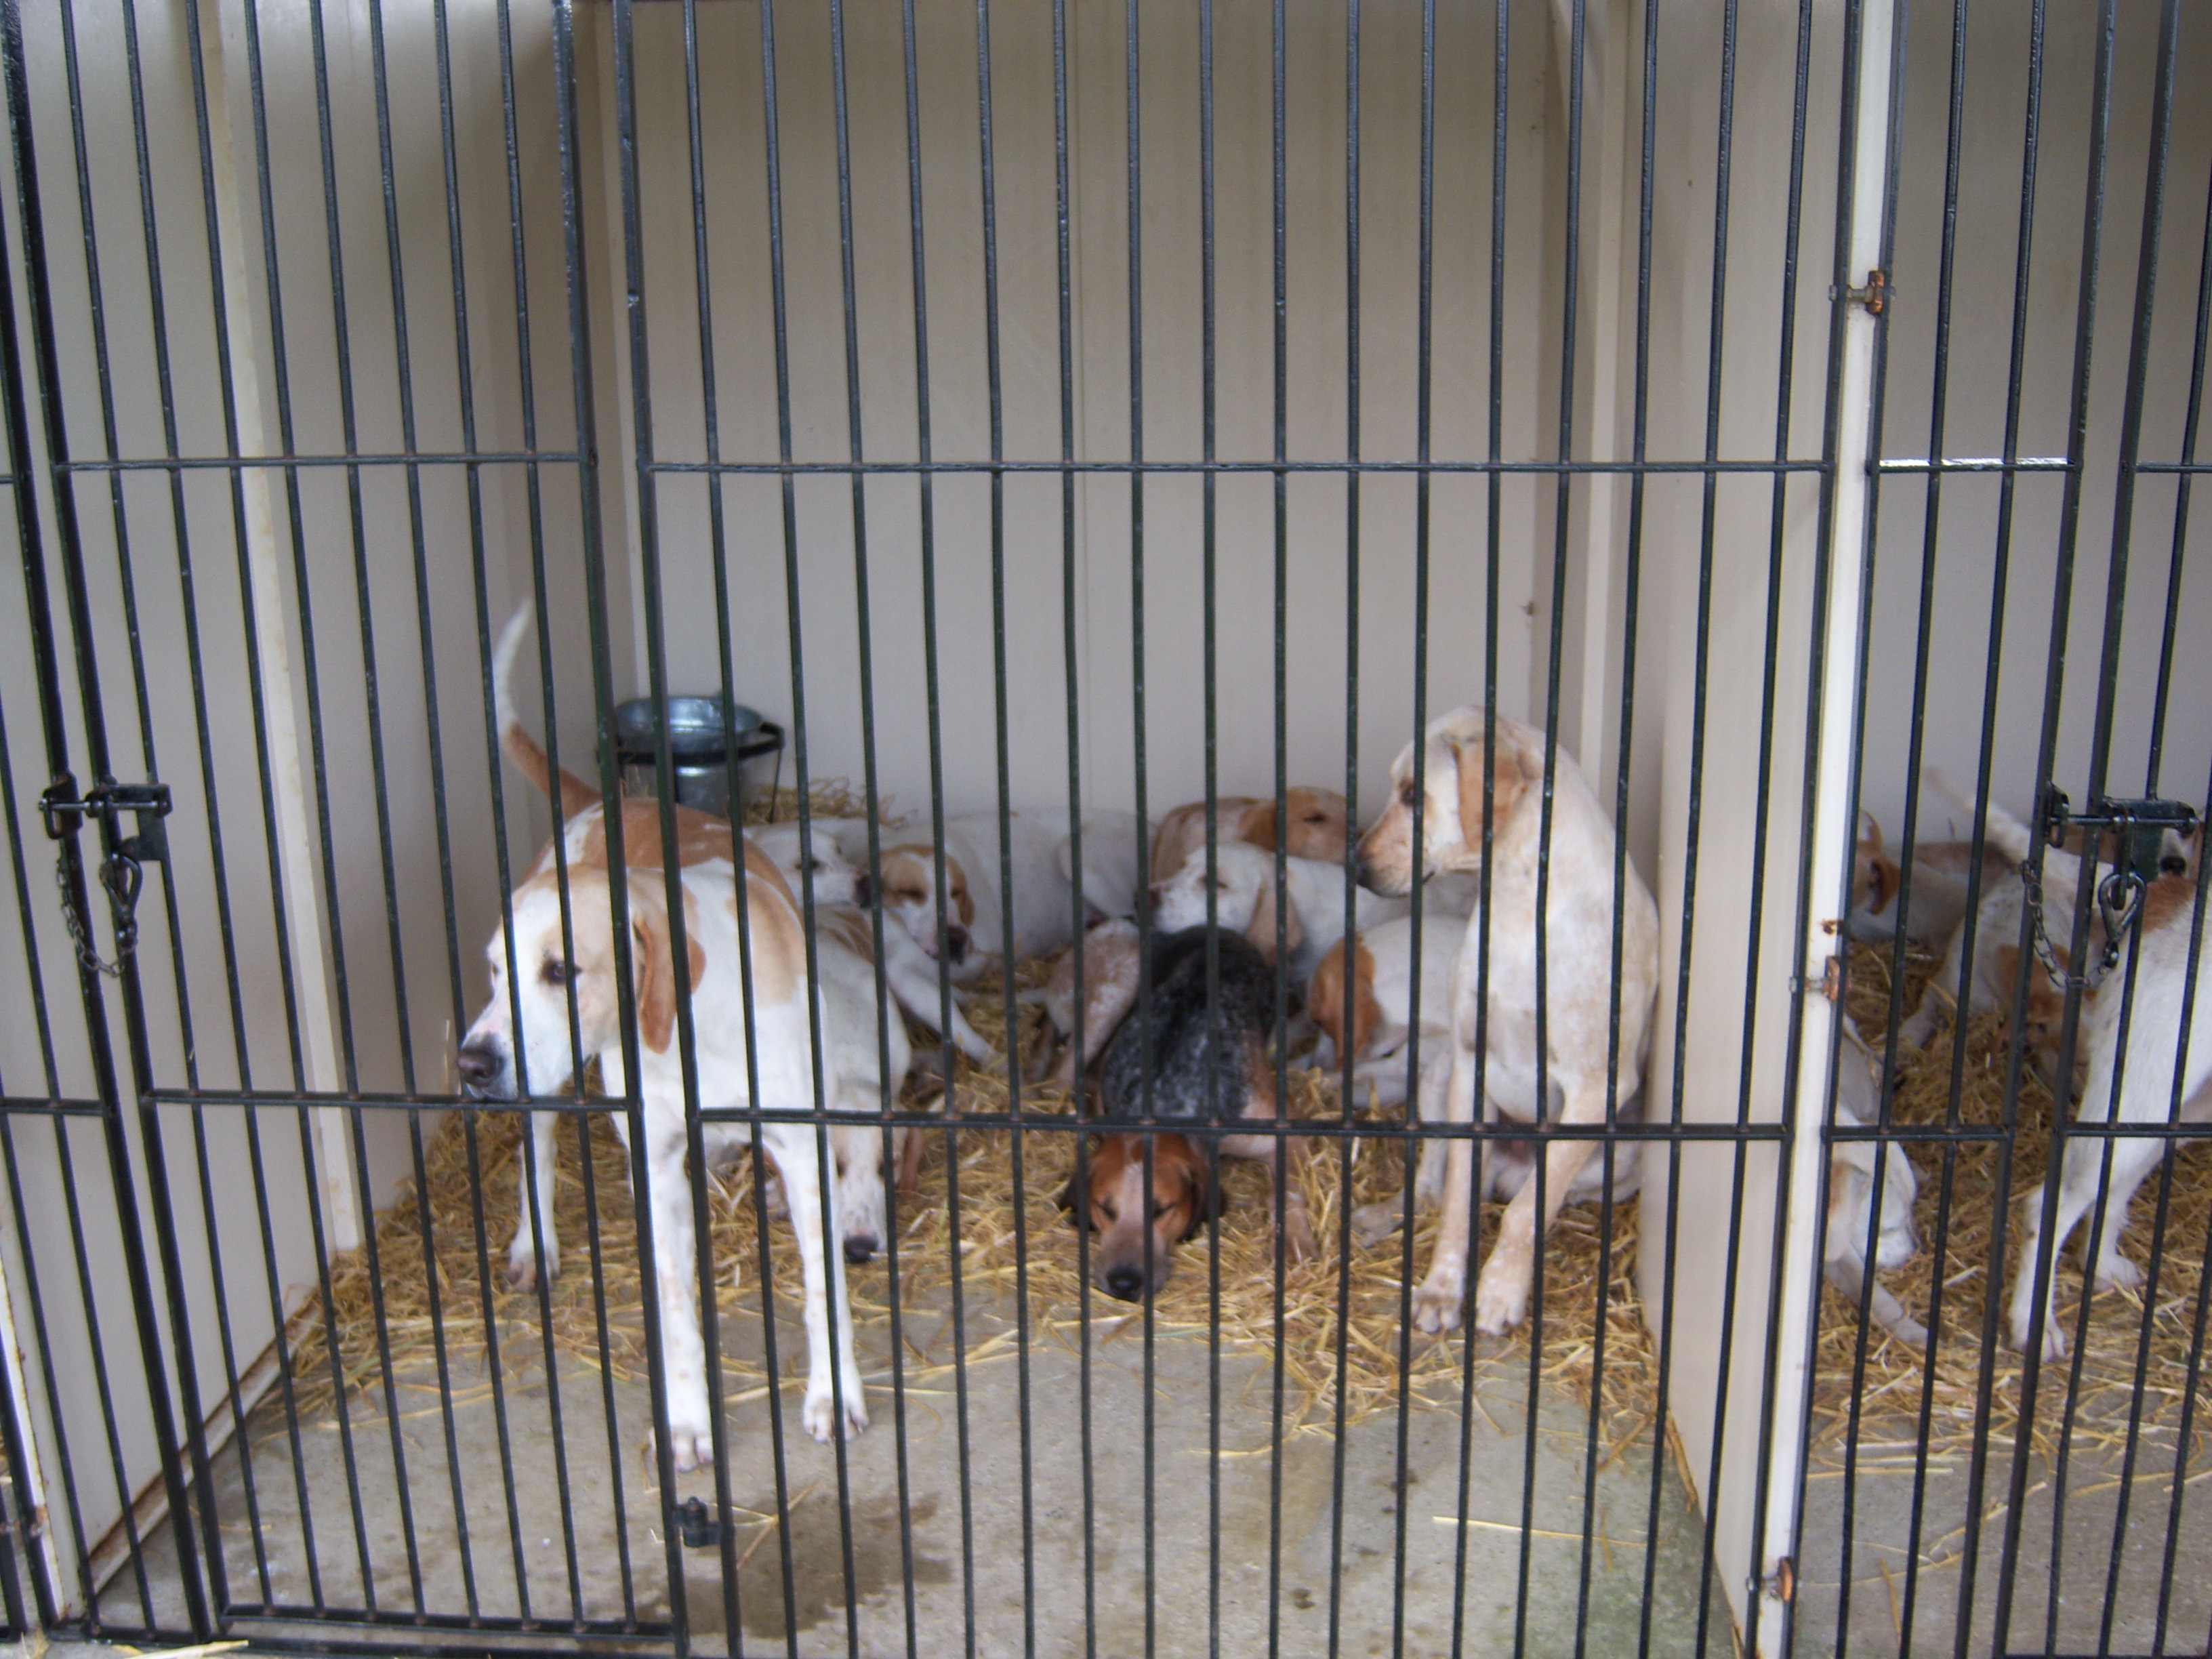 The Beaufort hounds, including the show's top dog, were relaxed in their kennel on the showgrounds